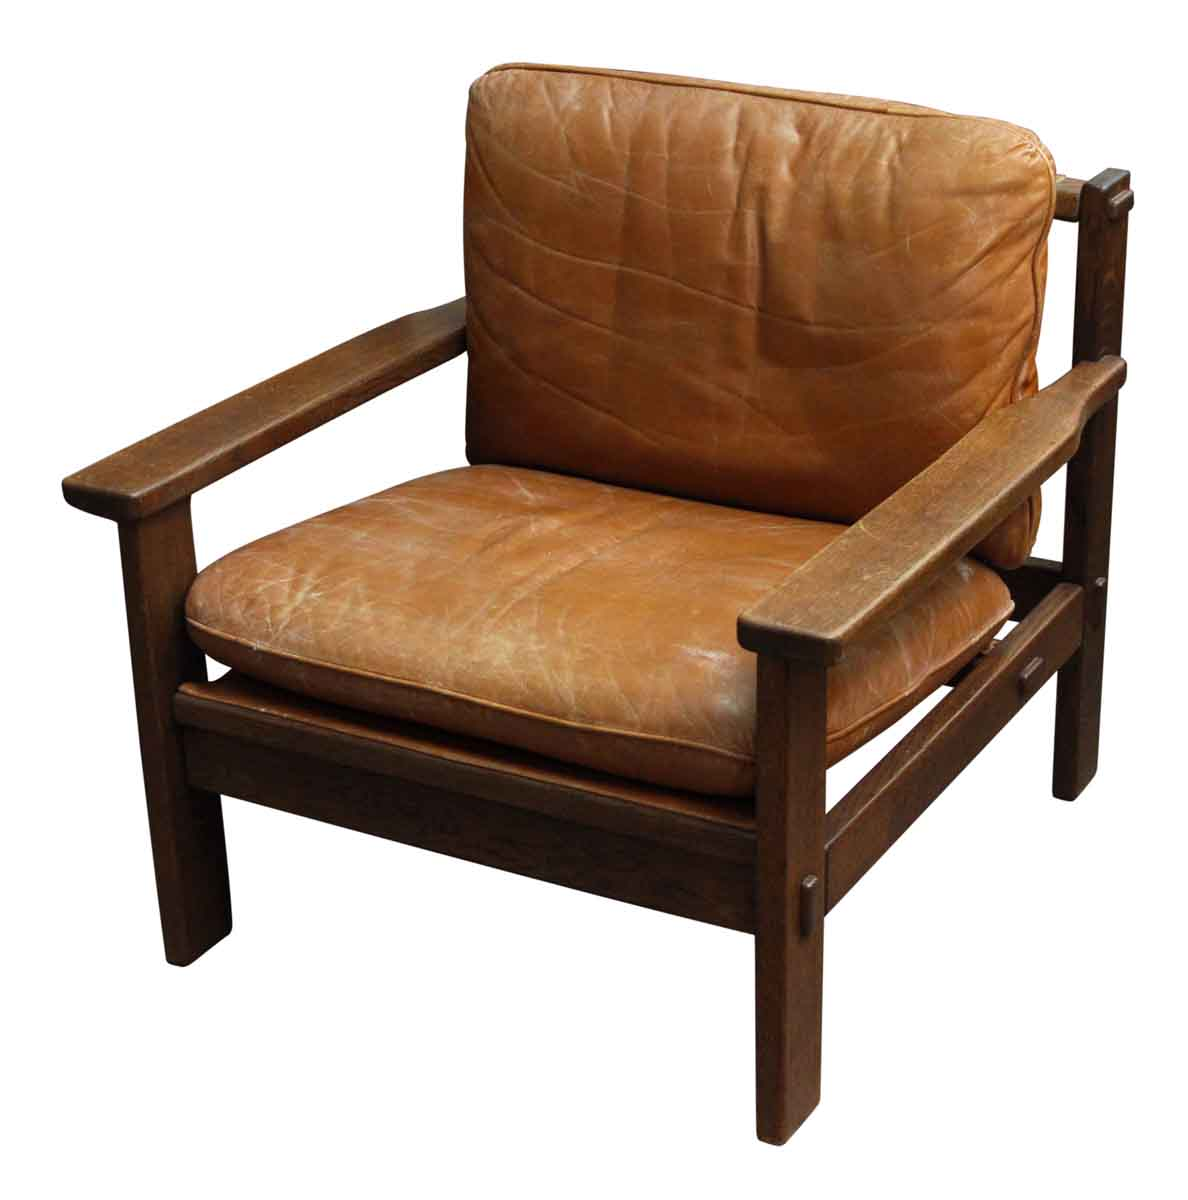 Pair of Brazilian Looking Leather Chairs - Living Room